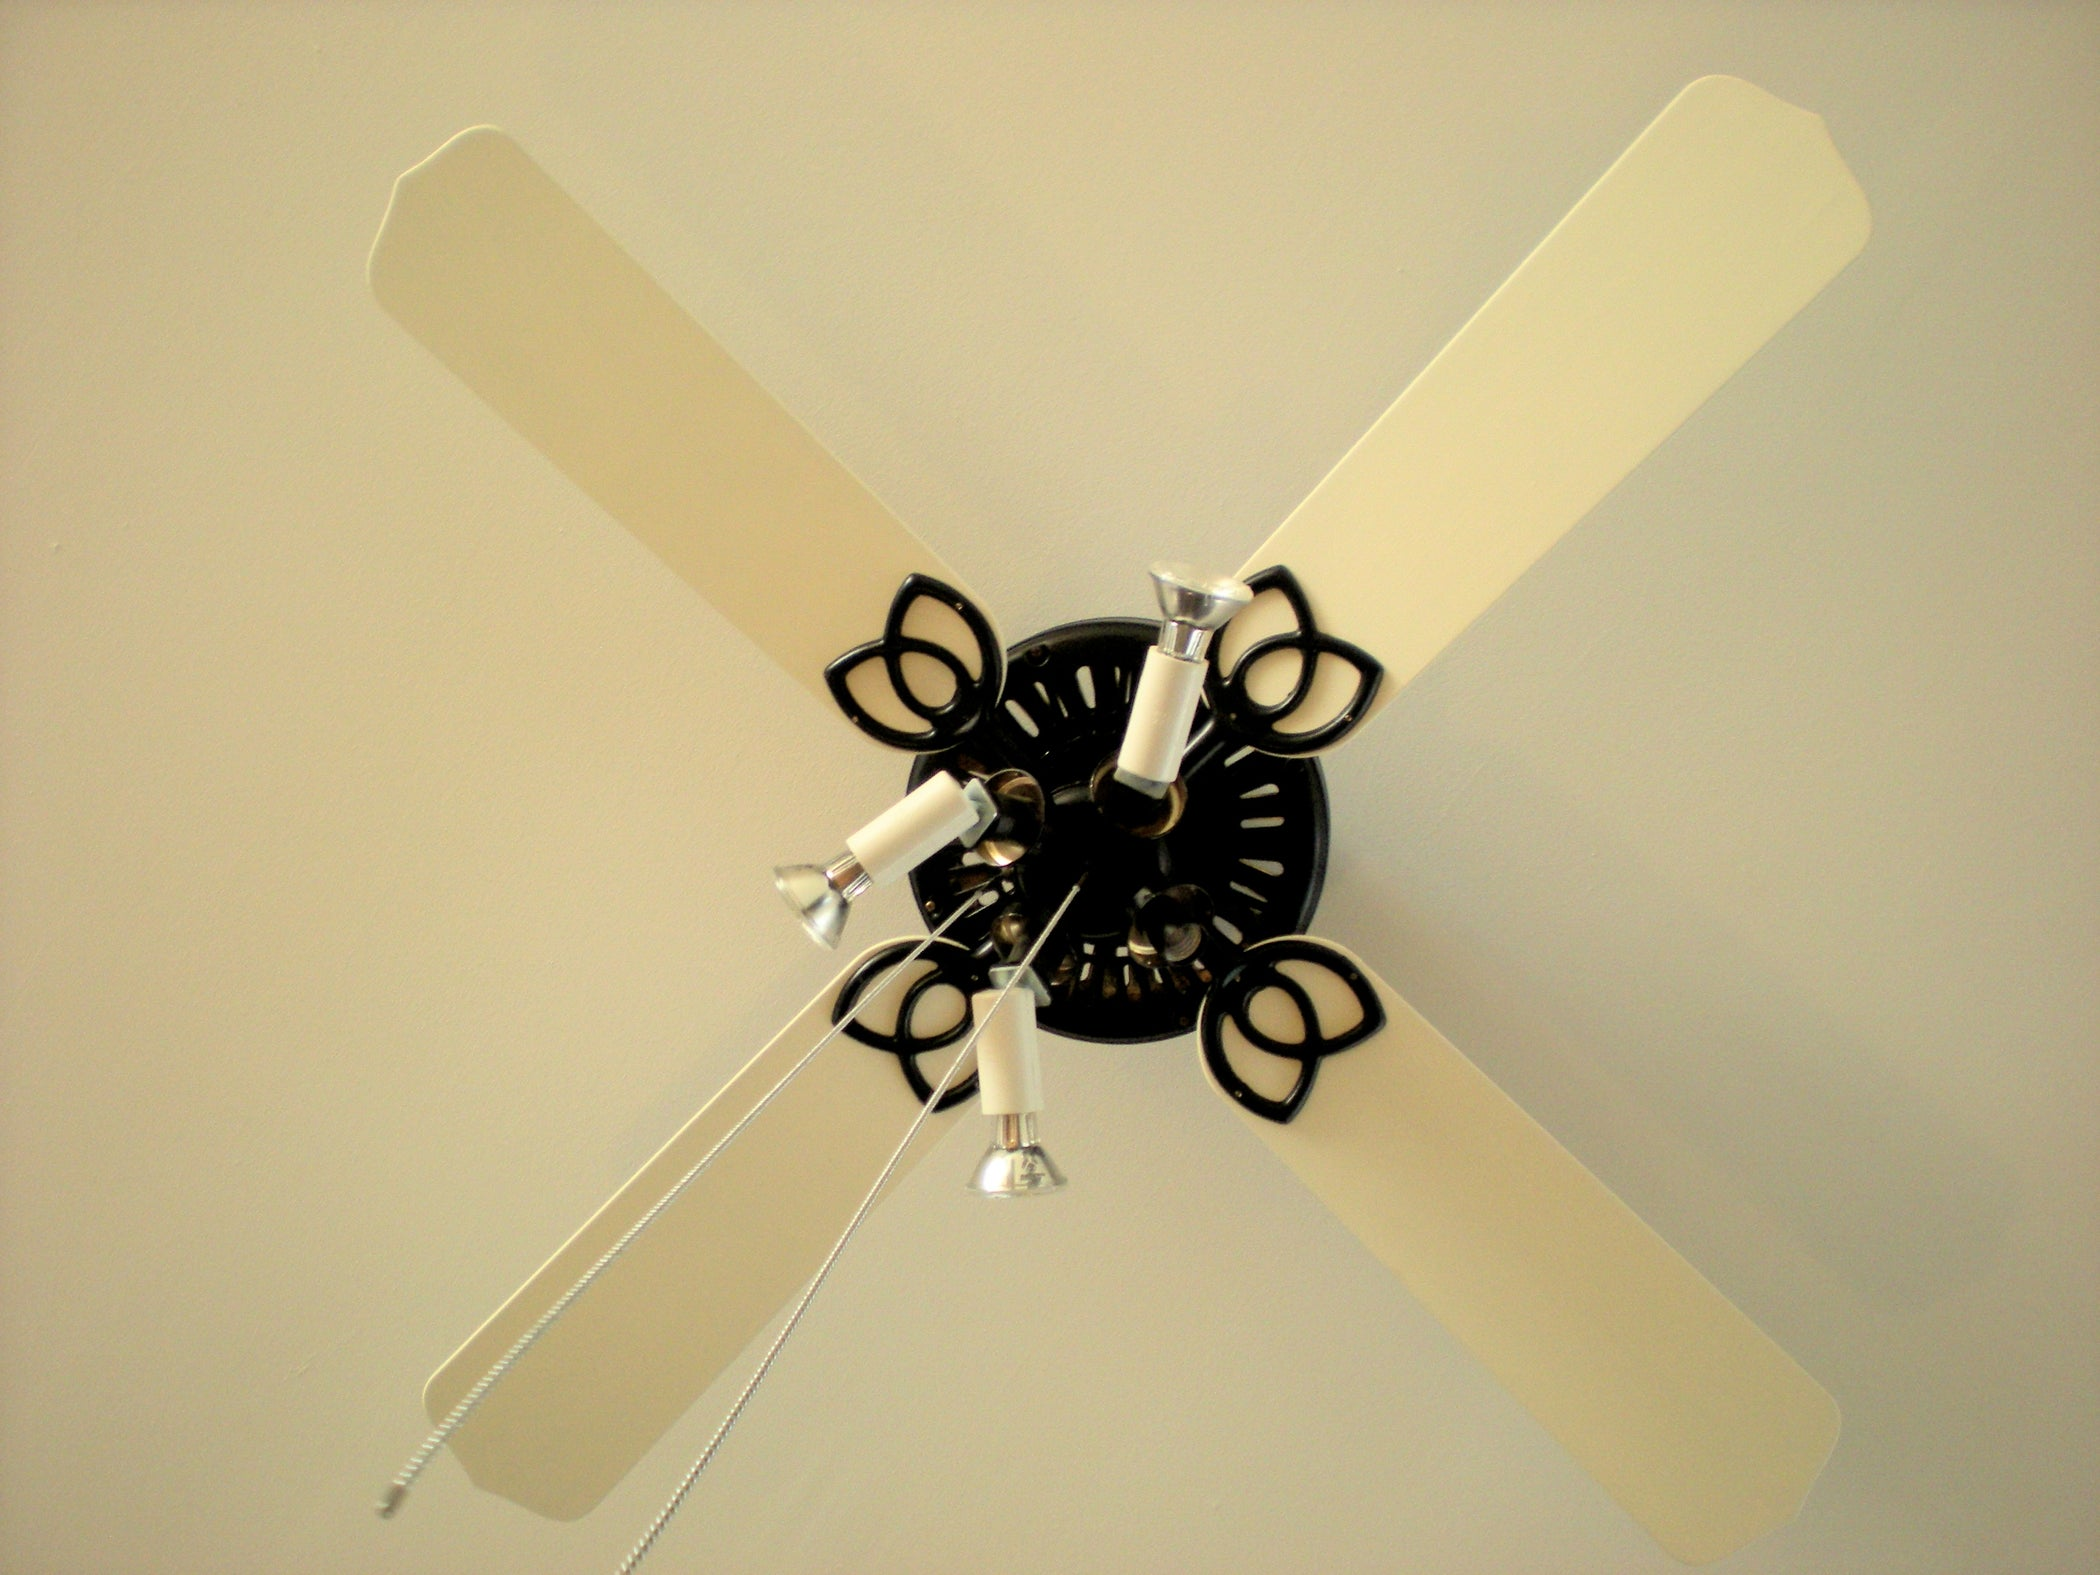 Upgrade Your Old Ceiling Fan: 8 Steps